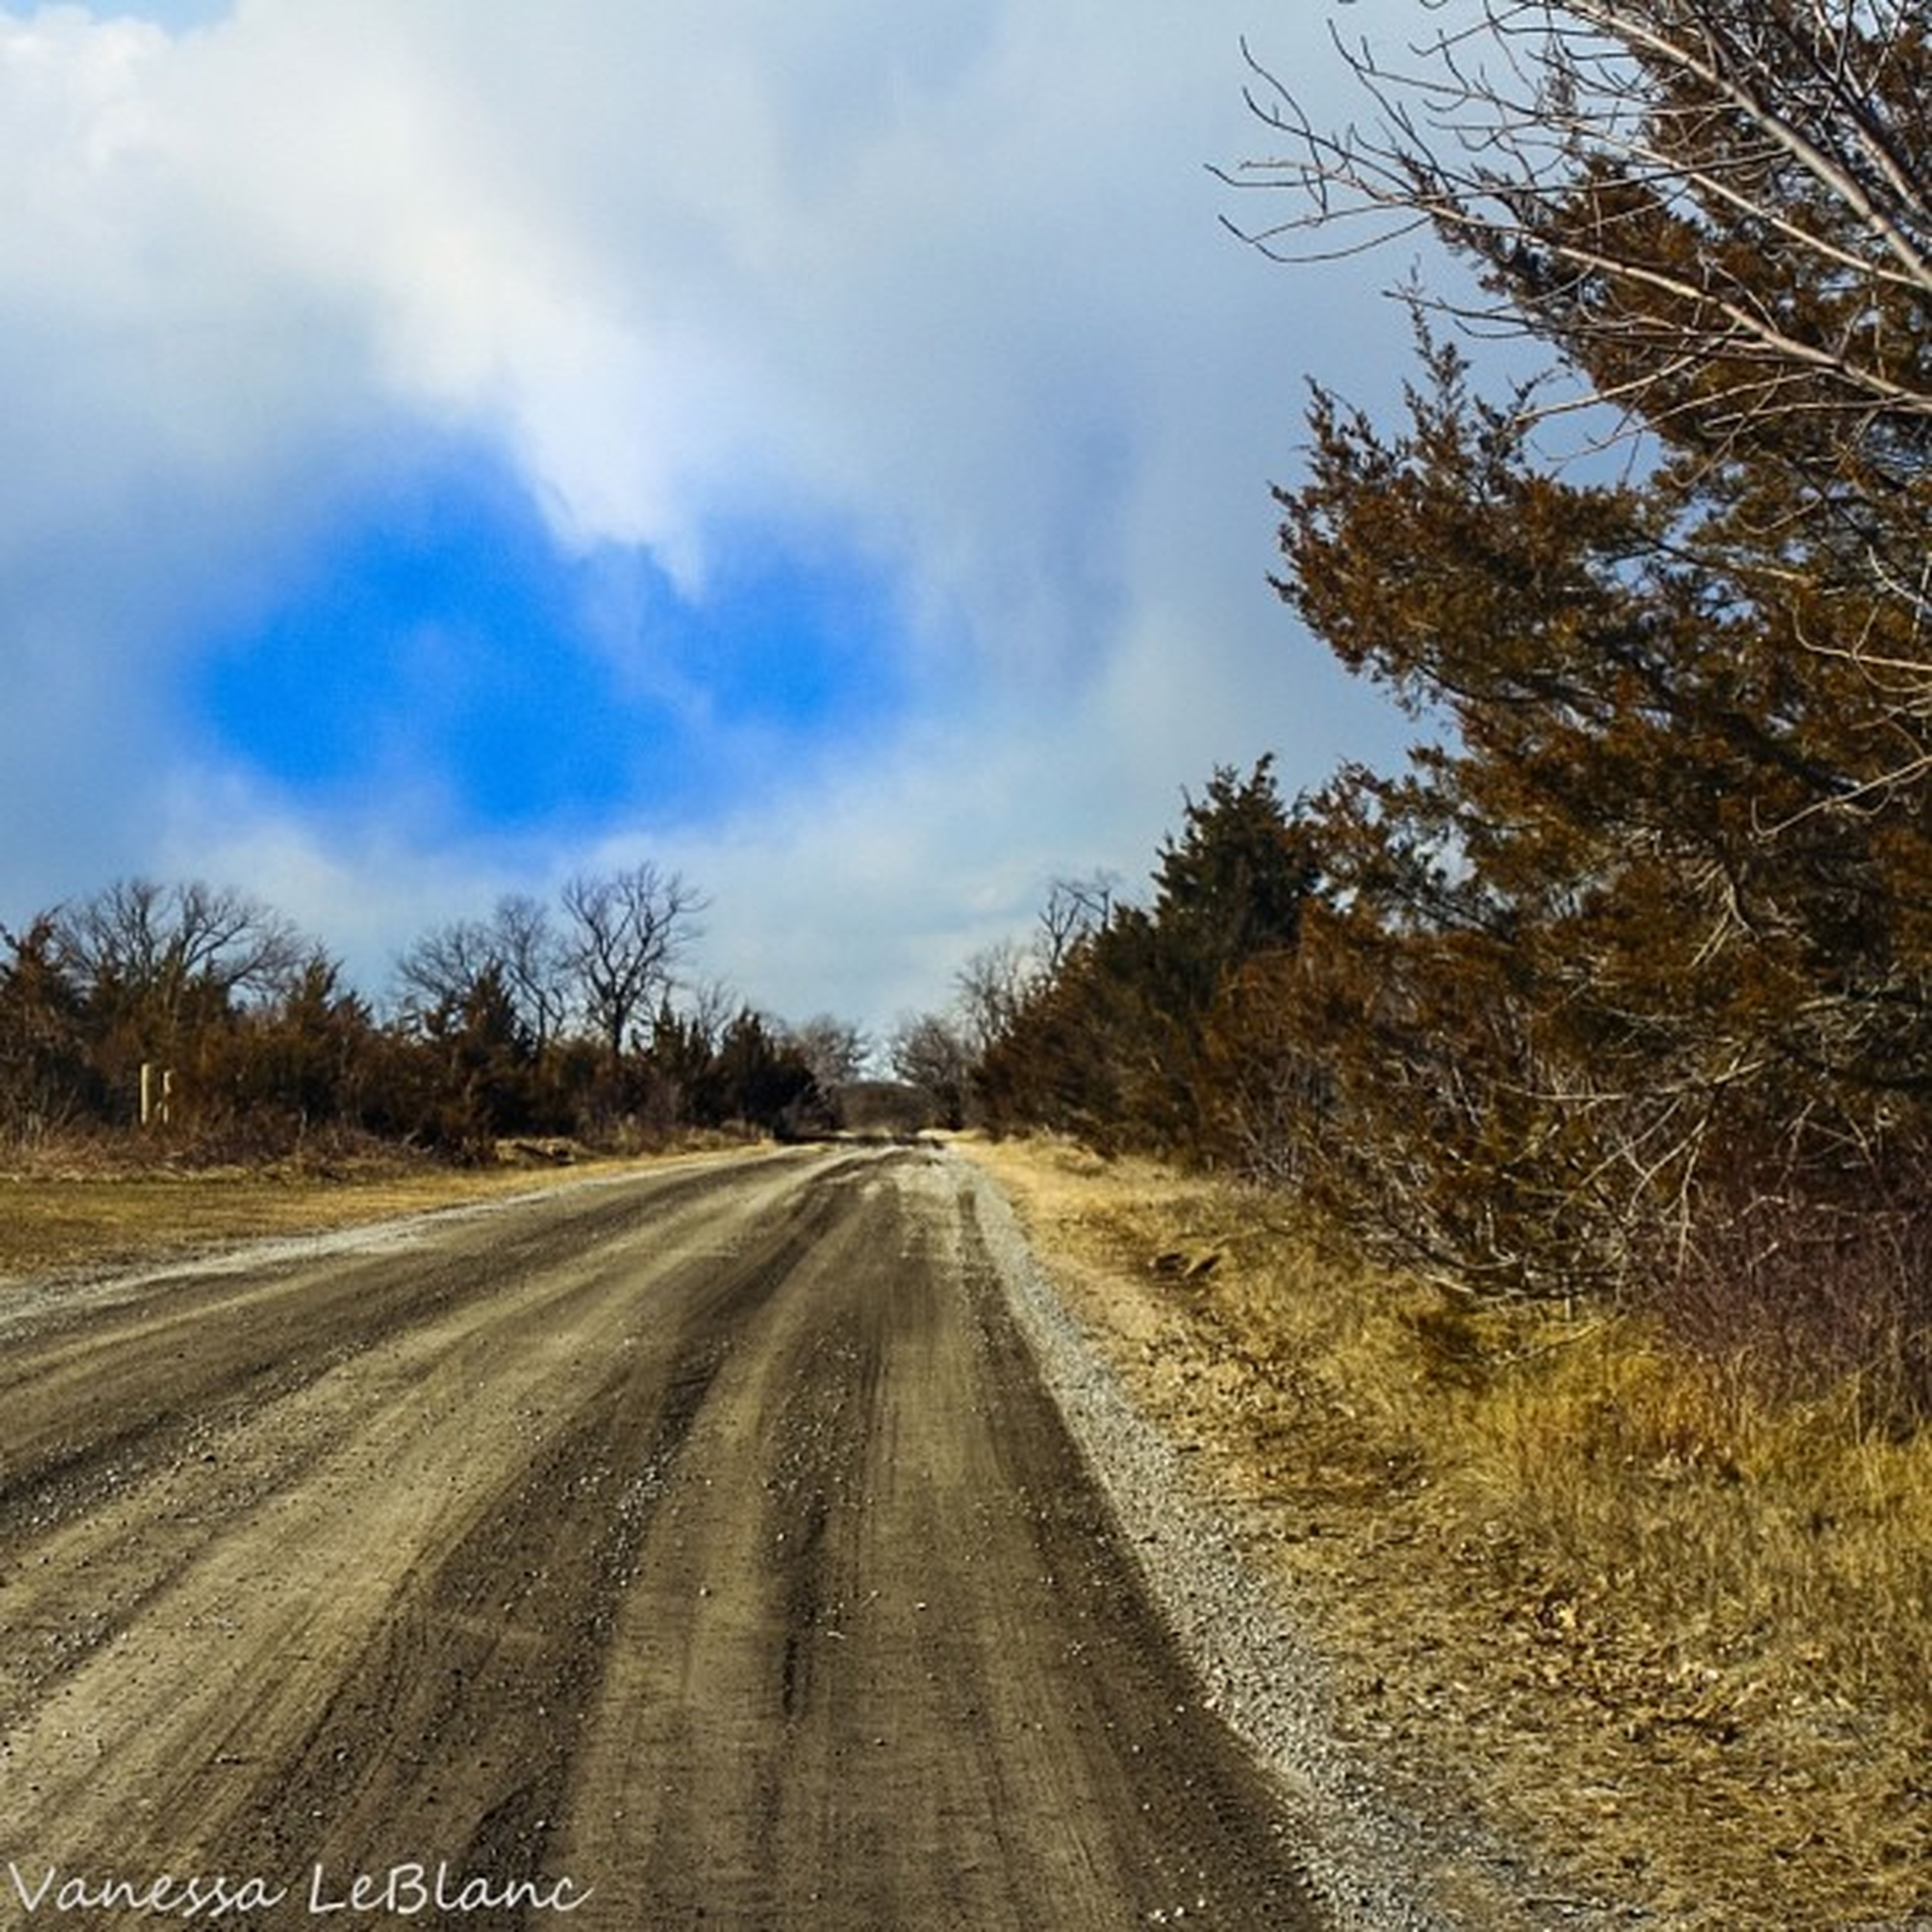 the way forward, transportation, diminishing perspective, sky, vanishing point, tree, road, cloud - sky, tranquility, landscape, tranquil scene, nature, cloudy, cloud, country road, growth, empty road, outdoors, no people, field